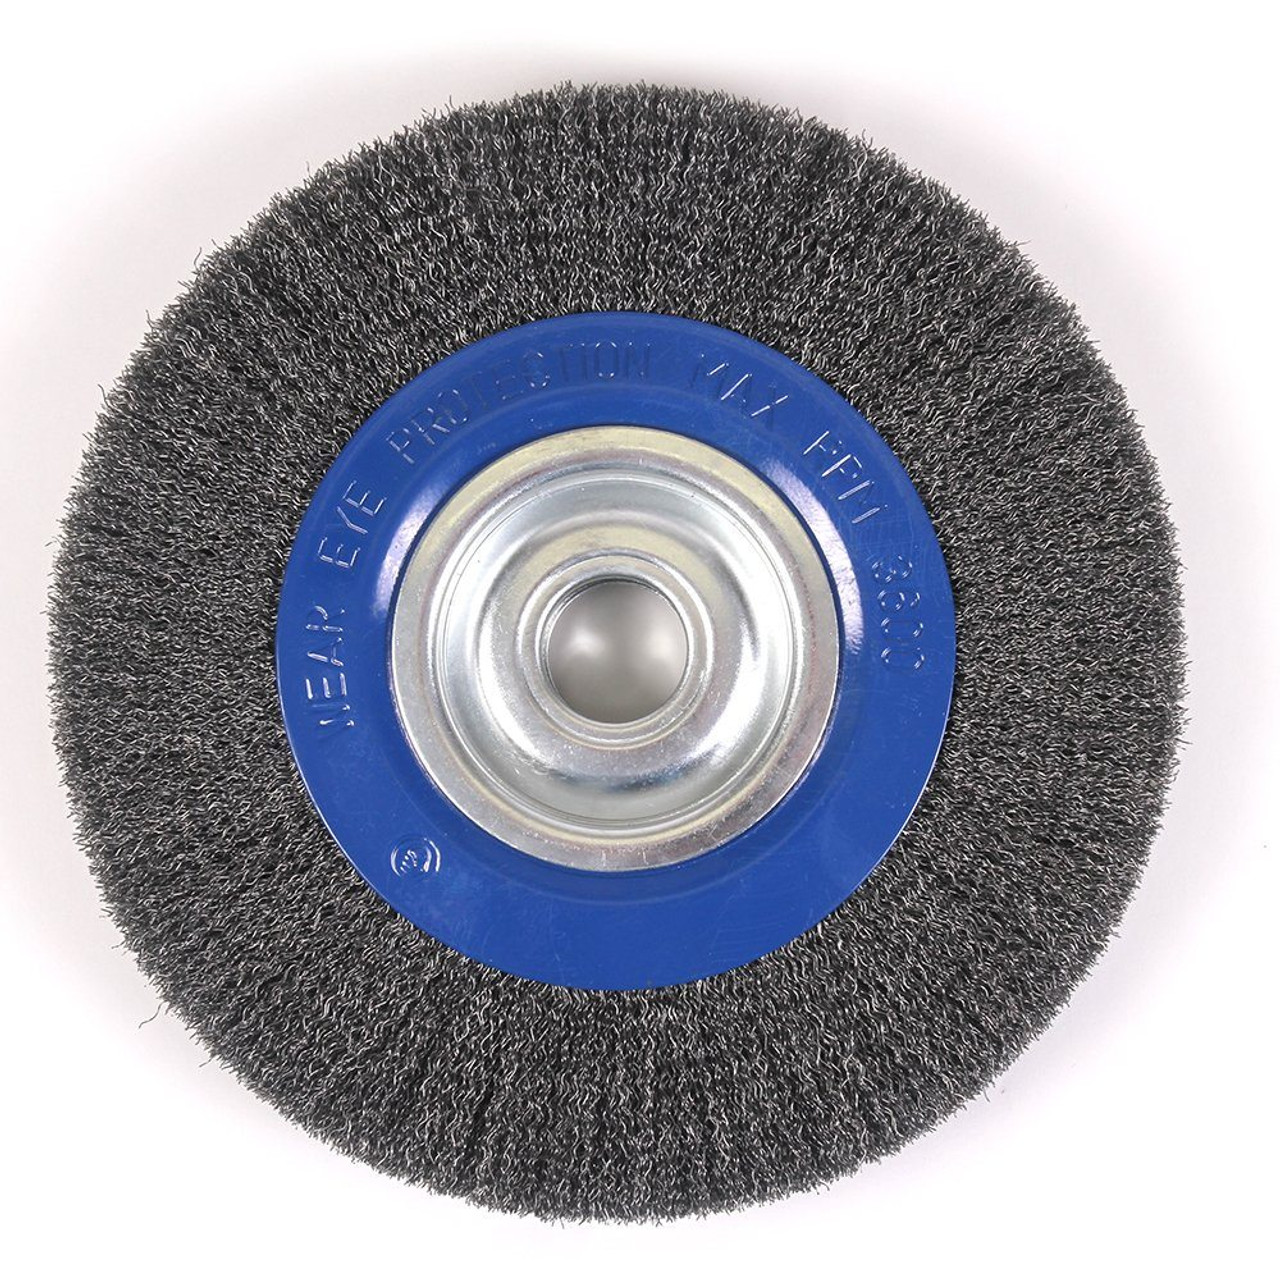 Swell 10 Crimped Wire Wheel For Pedestal Grinder Carbon Steel Caraccident5 Cool Chair Designs And Ideas Caraccident5Info